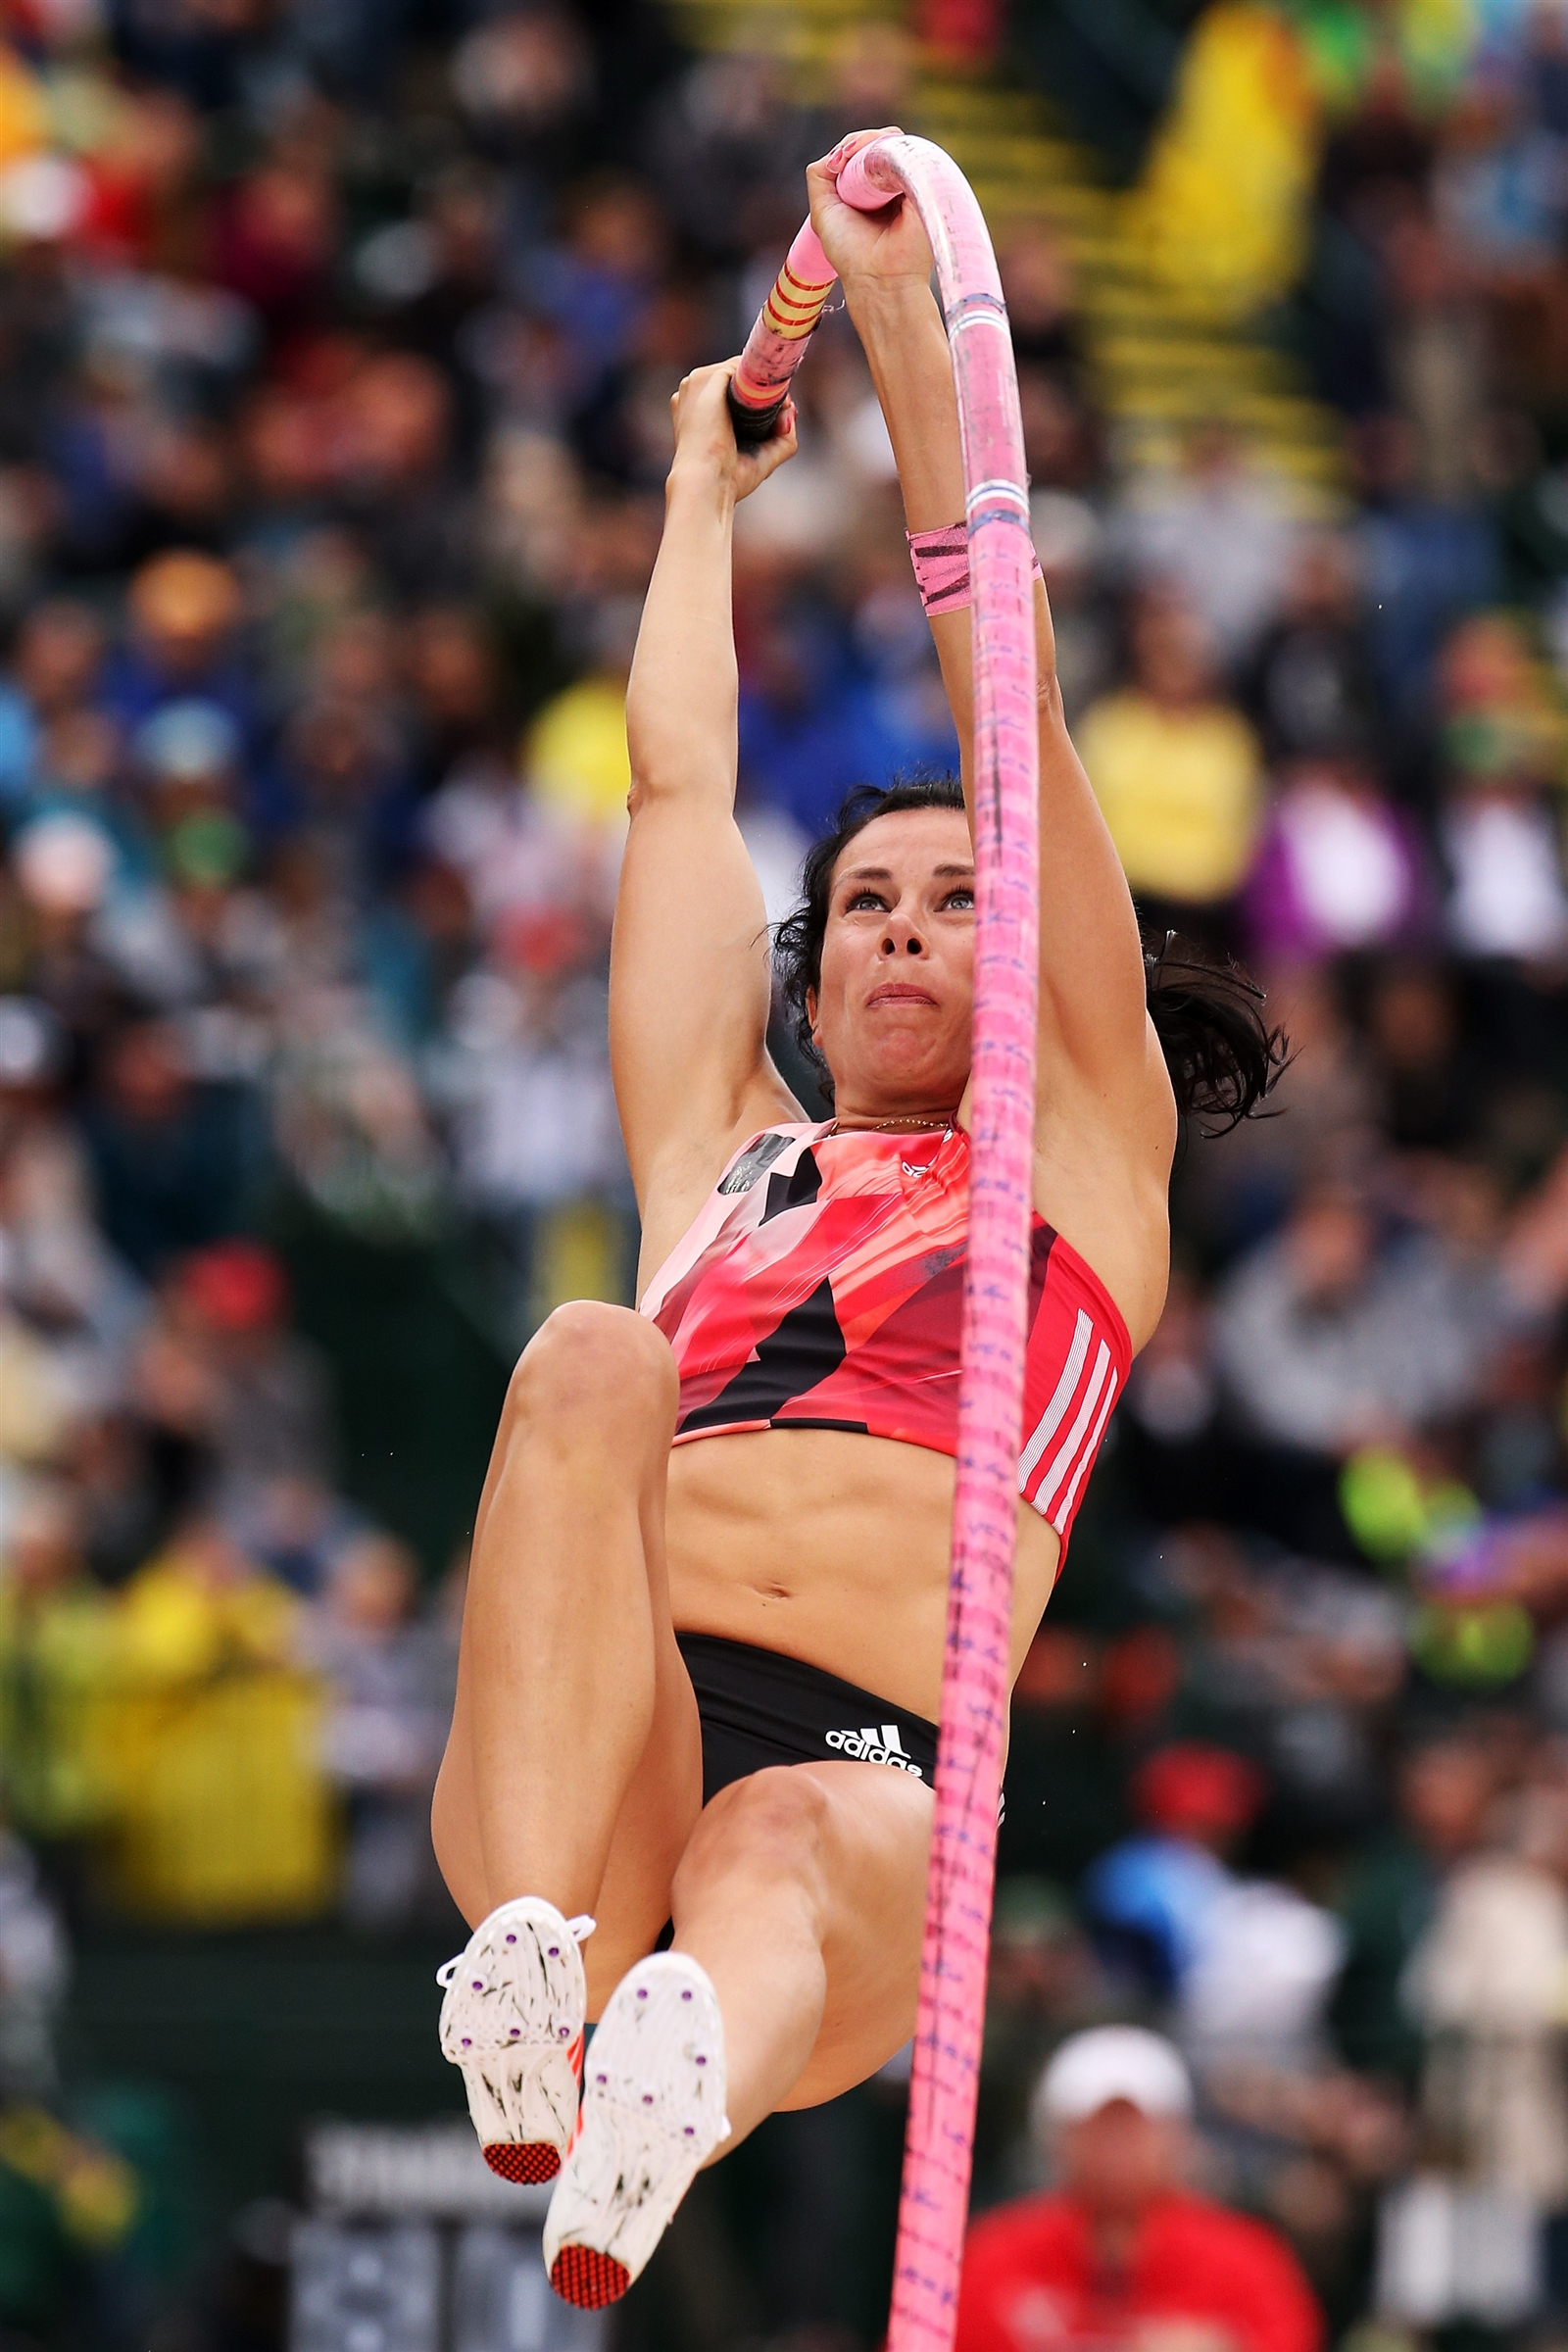 Competing on her way to placing first in the Women's Pole Vault Final during the 2016 U.S. Olympic Track & Field Team Trial.